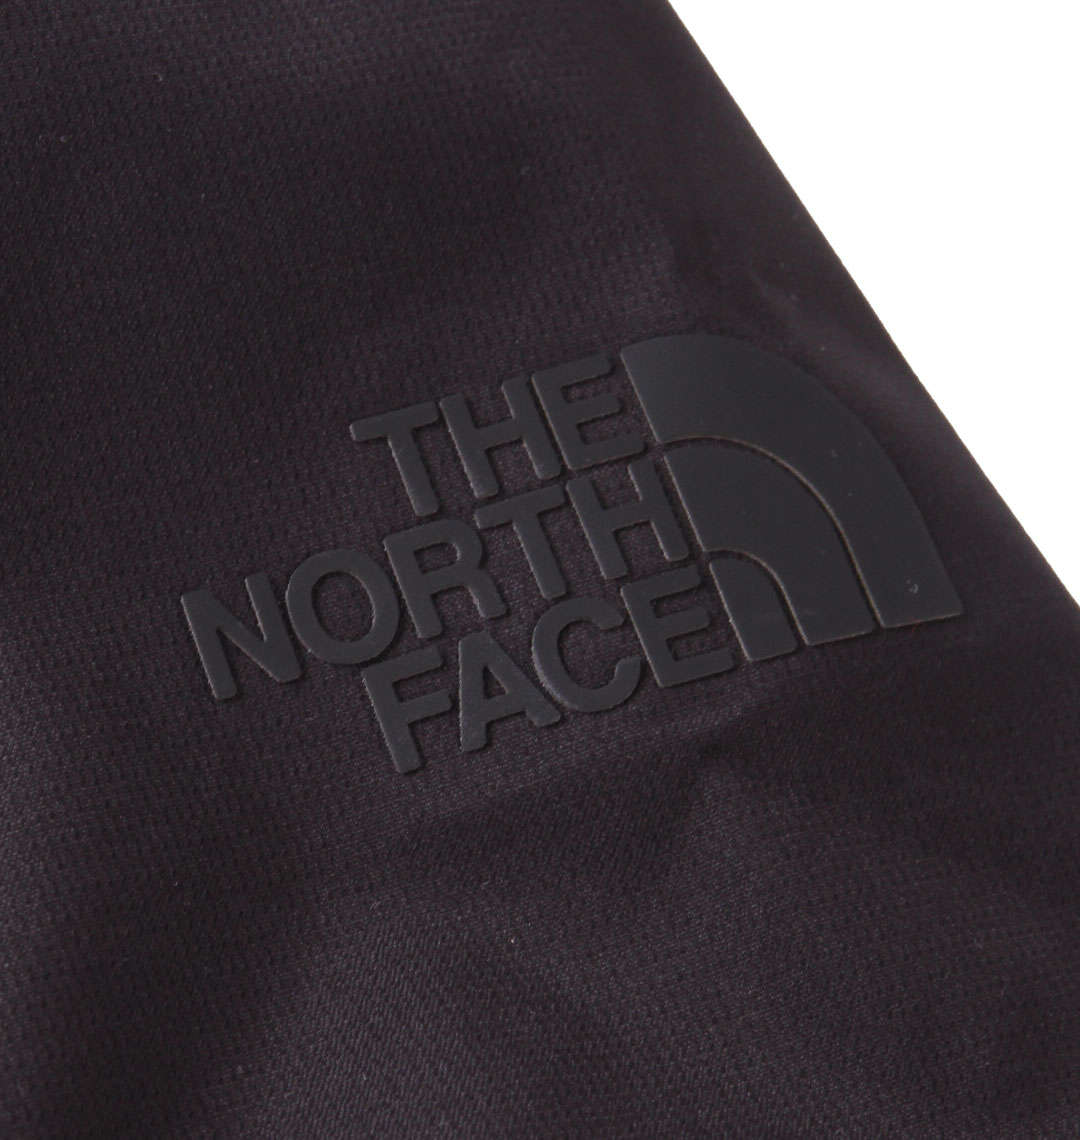 THE NORTH FACE 中綿ジャケット 袖プリント